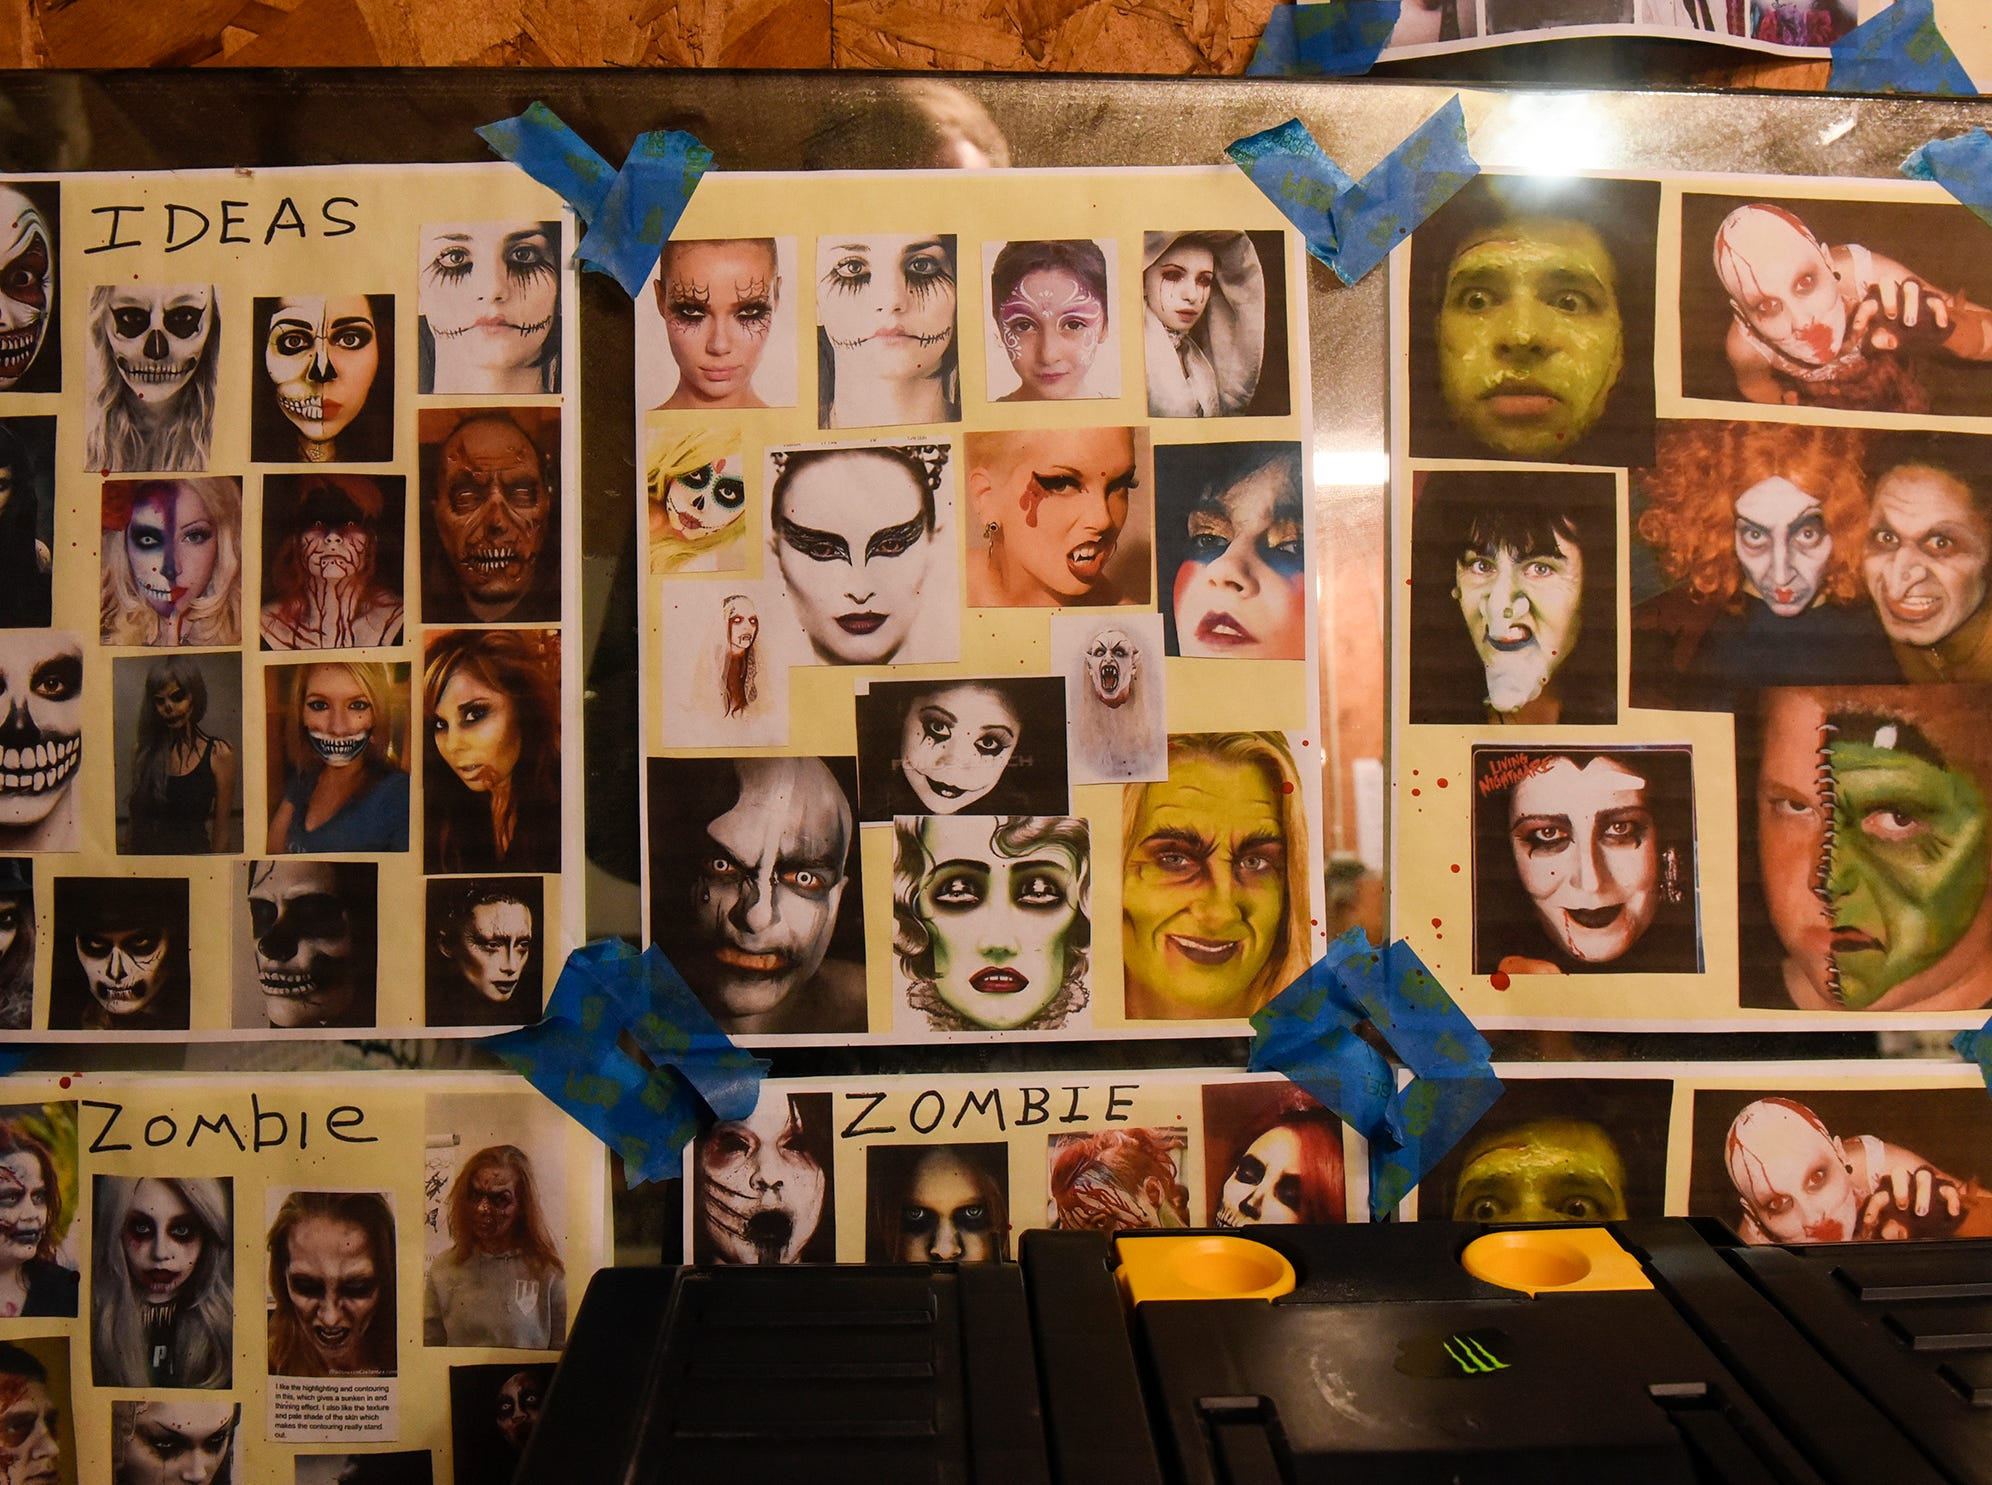 Makeup ideas line the walls of the makeup room Thursday, Oct. 18, at Molitor's Haunted Acres in Sauk Rapids.